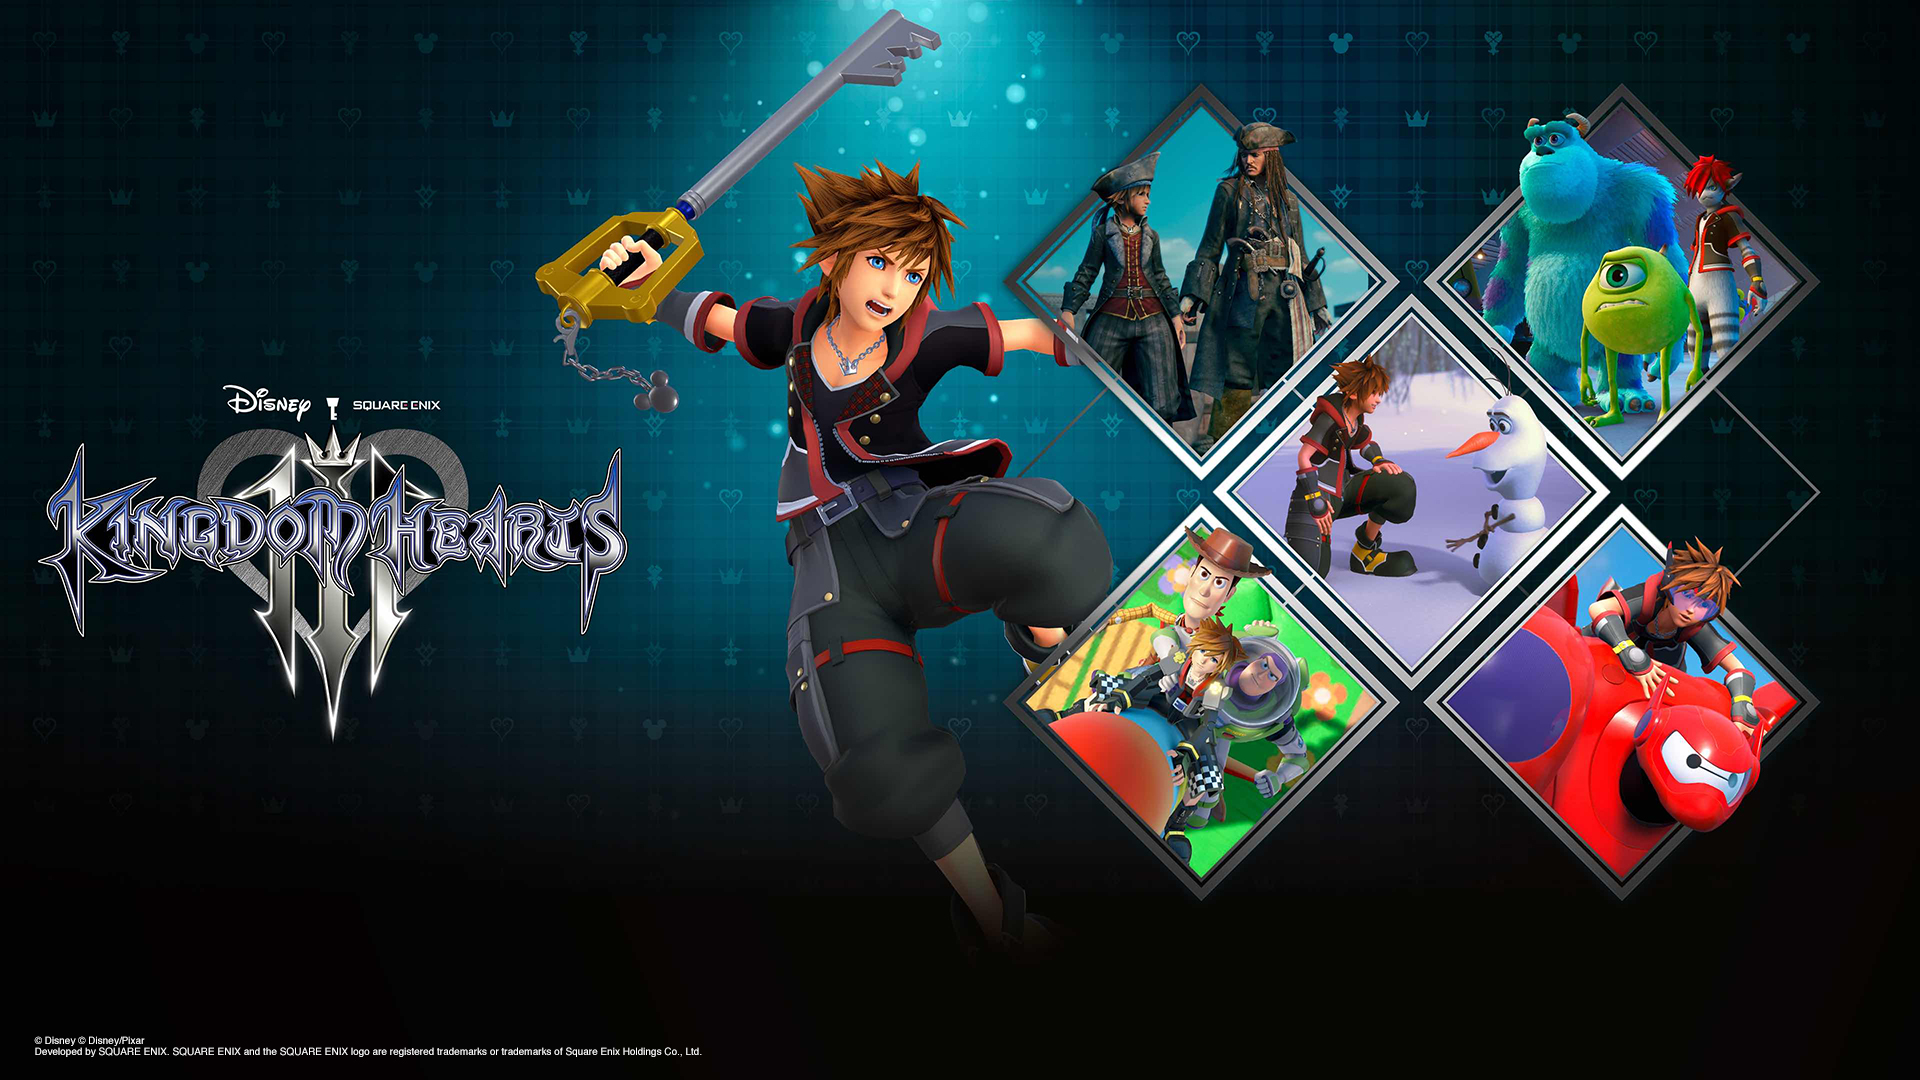 Kingdom Hearts Key Art